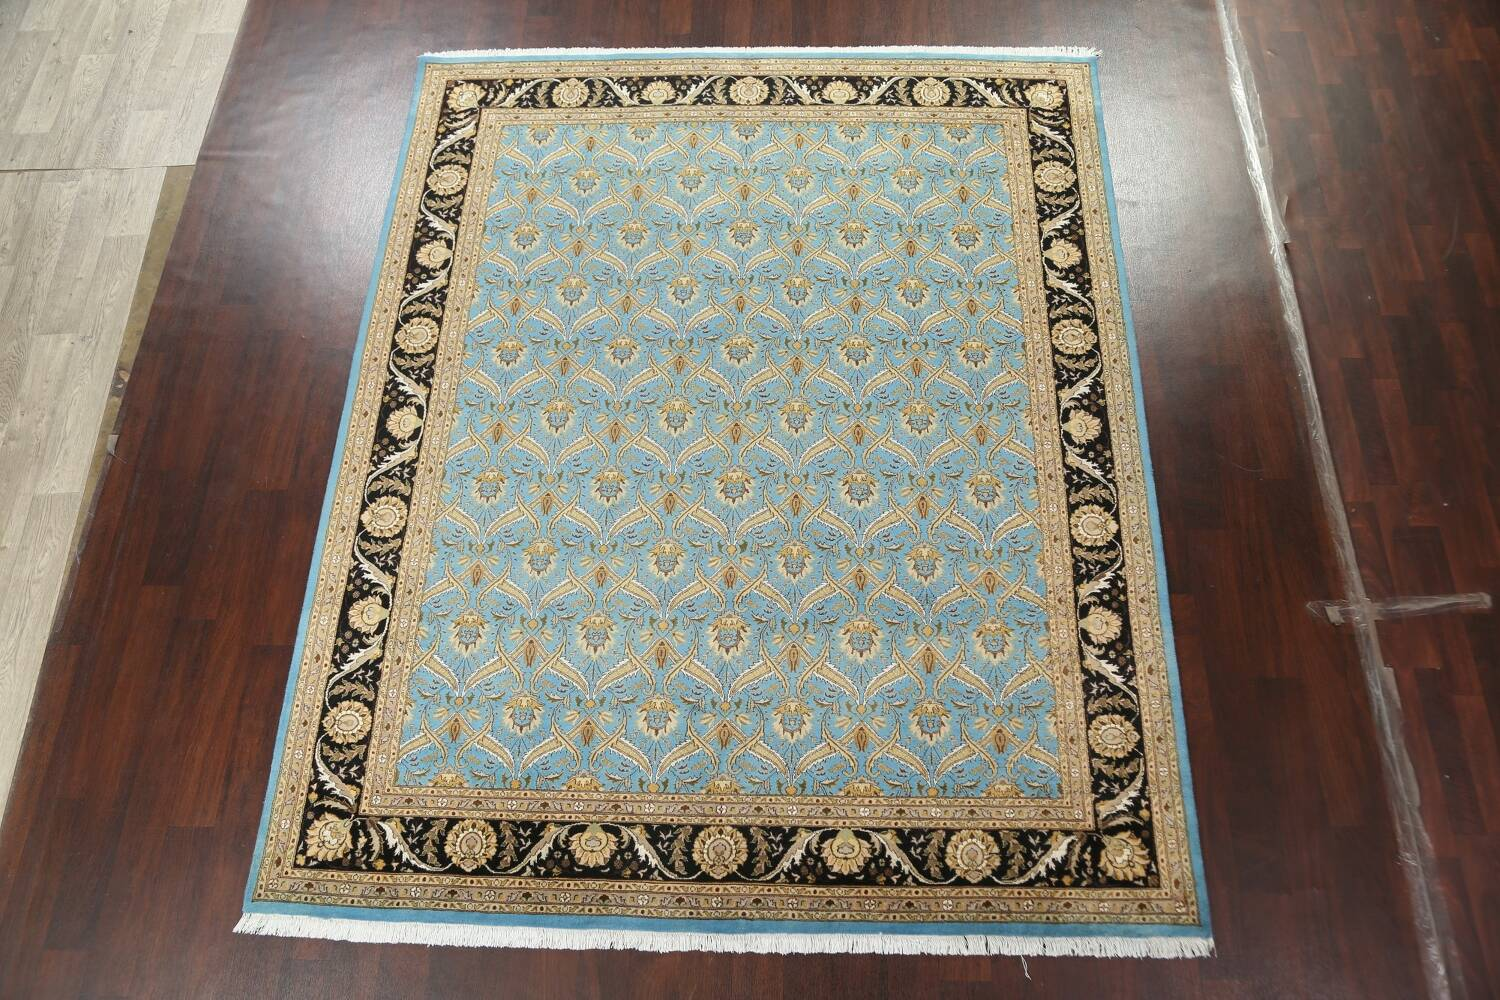 Vegetable Dye Aubusson Hand-Knotted Area Rug 8x10 image 2